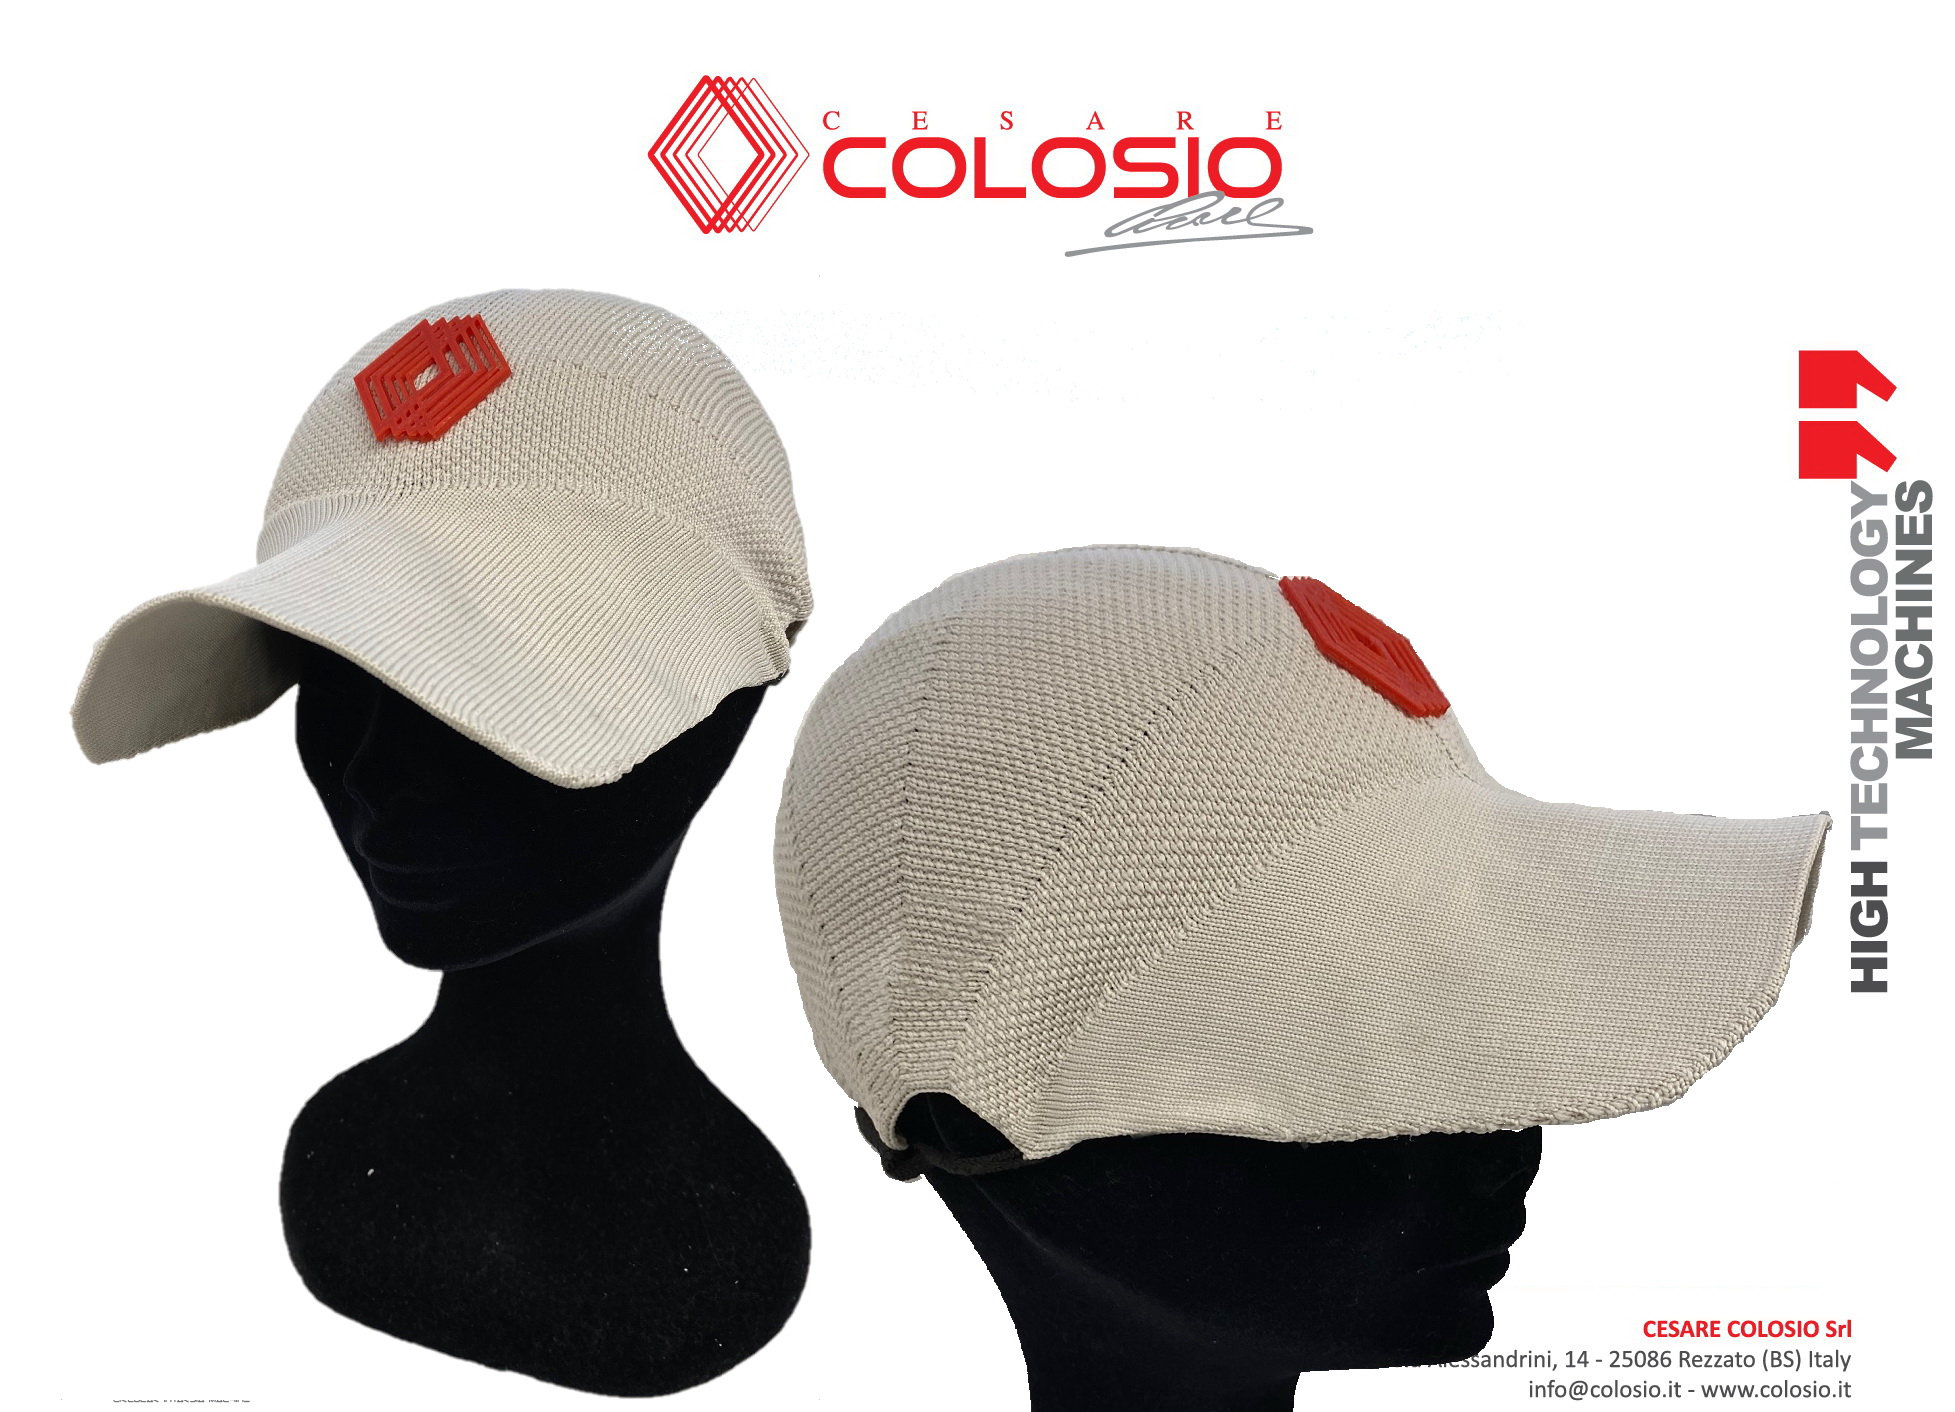 Colosio Develops Another Brand-New Knit Innovation